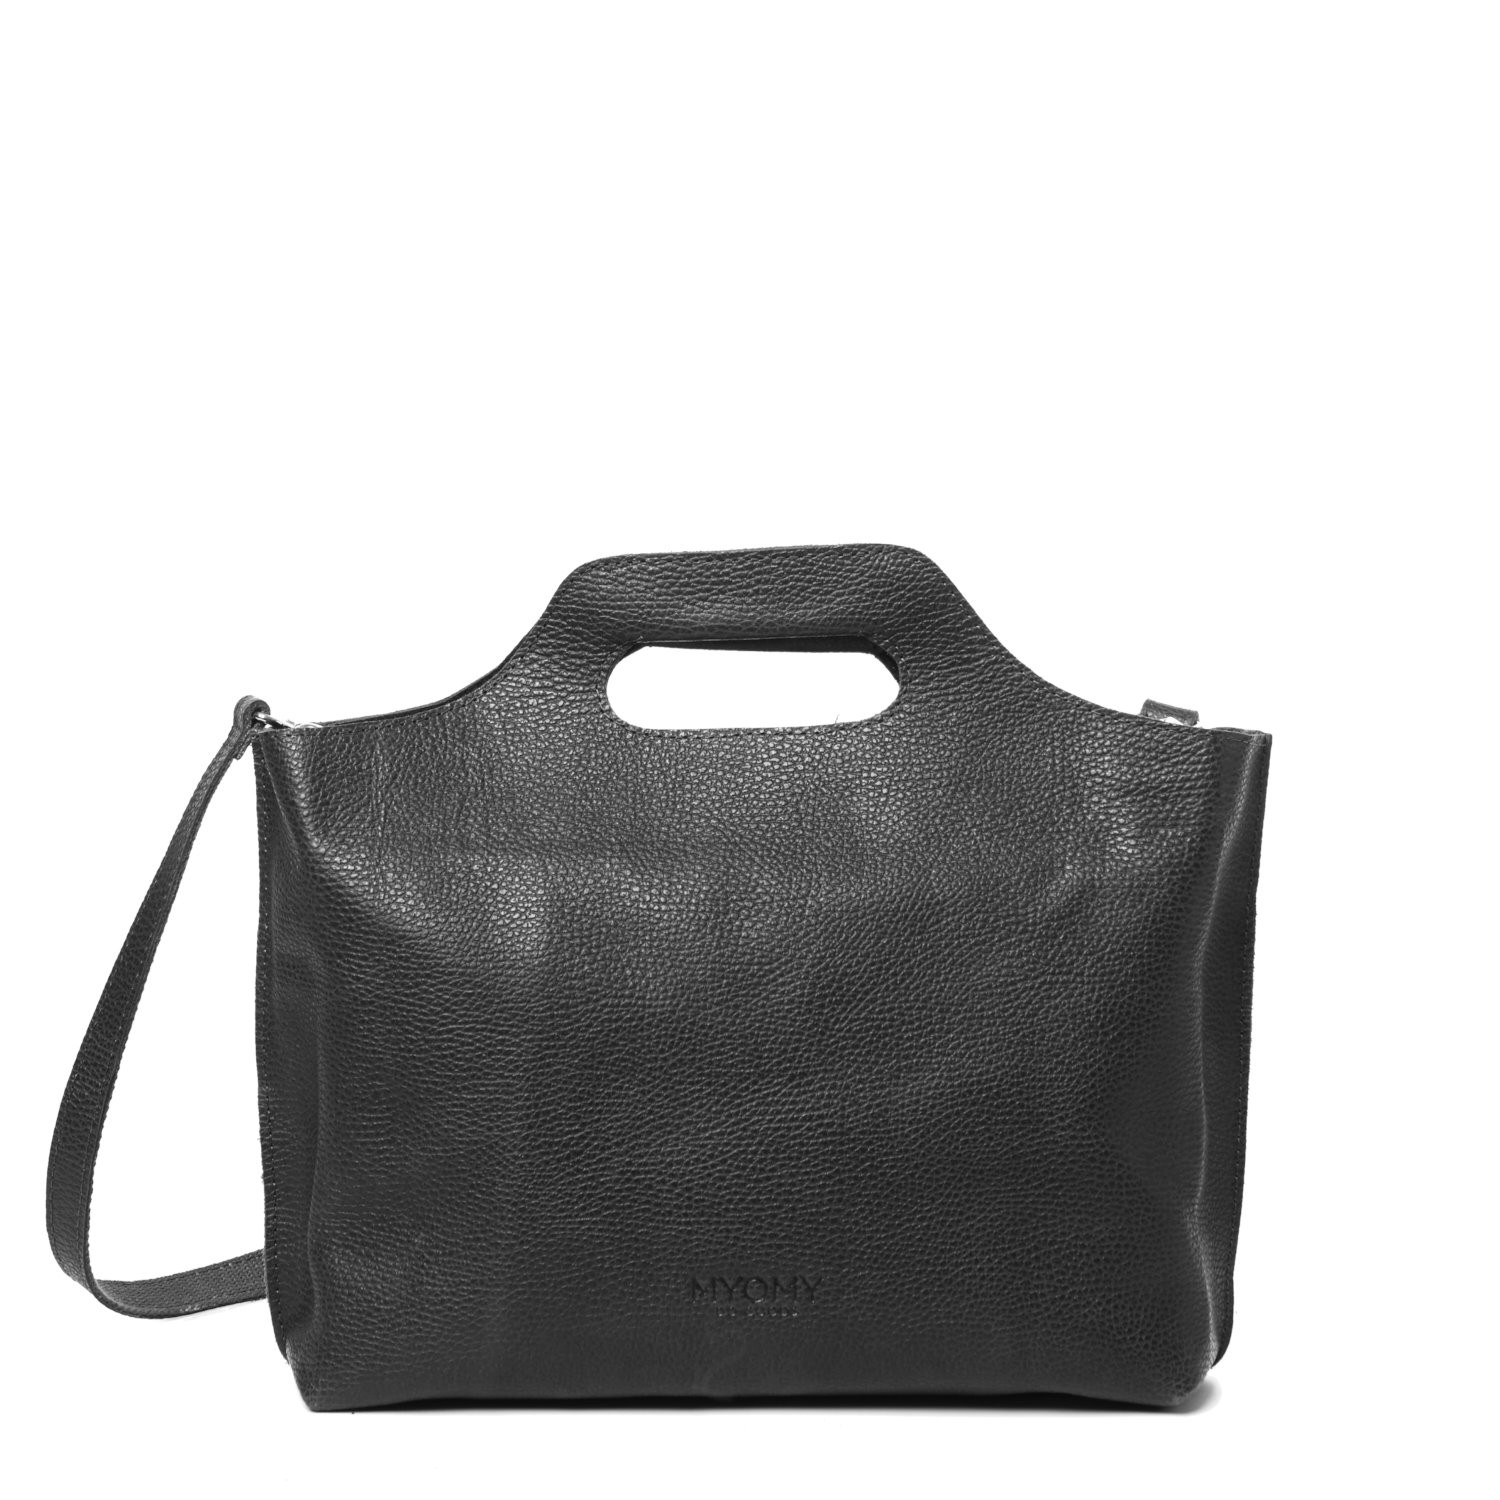 MY CARRY BAG Handbag – rambler black